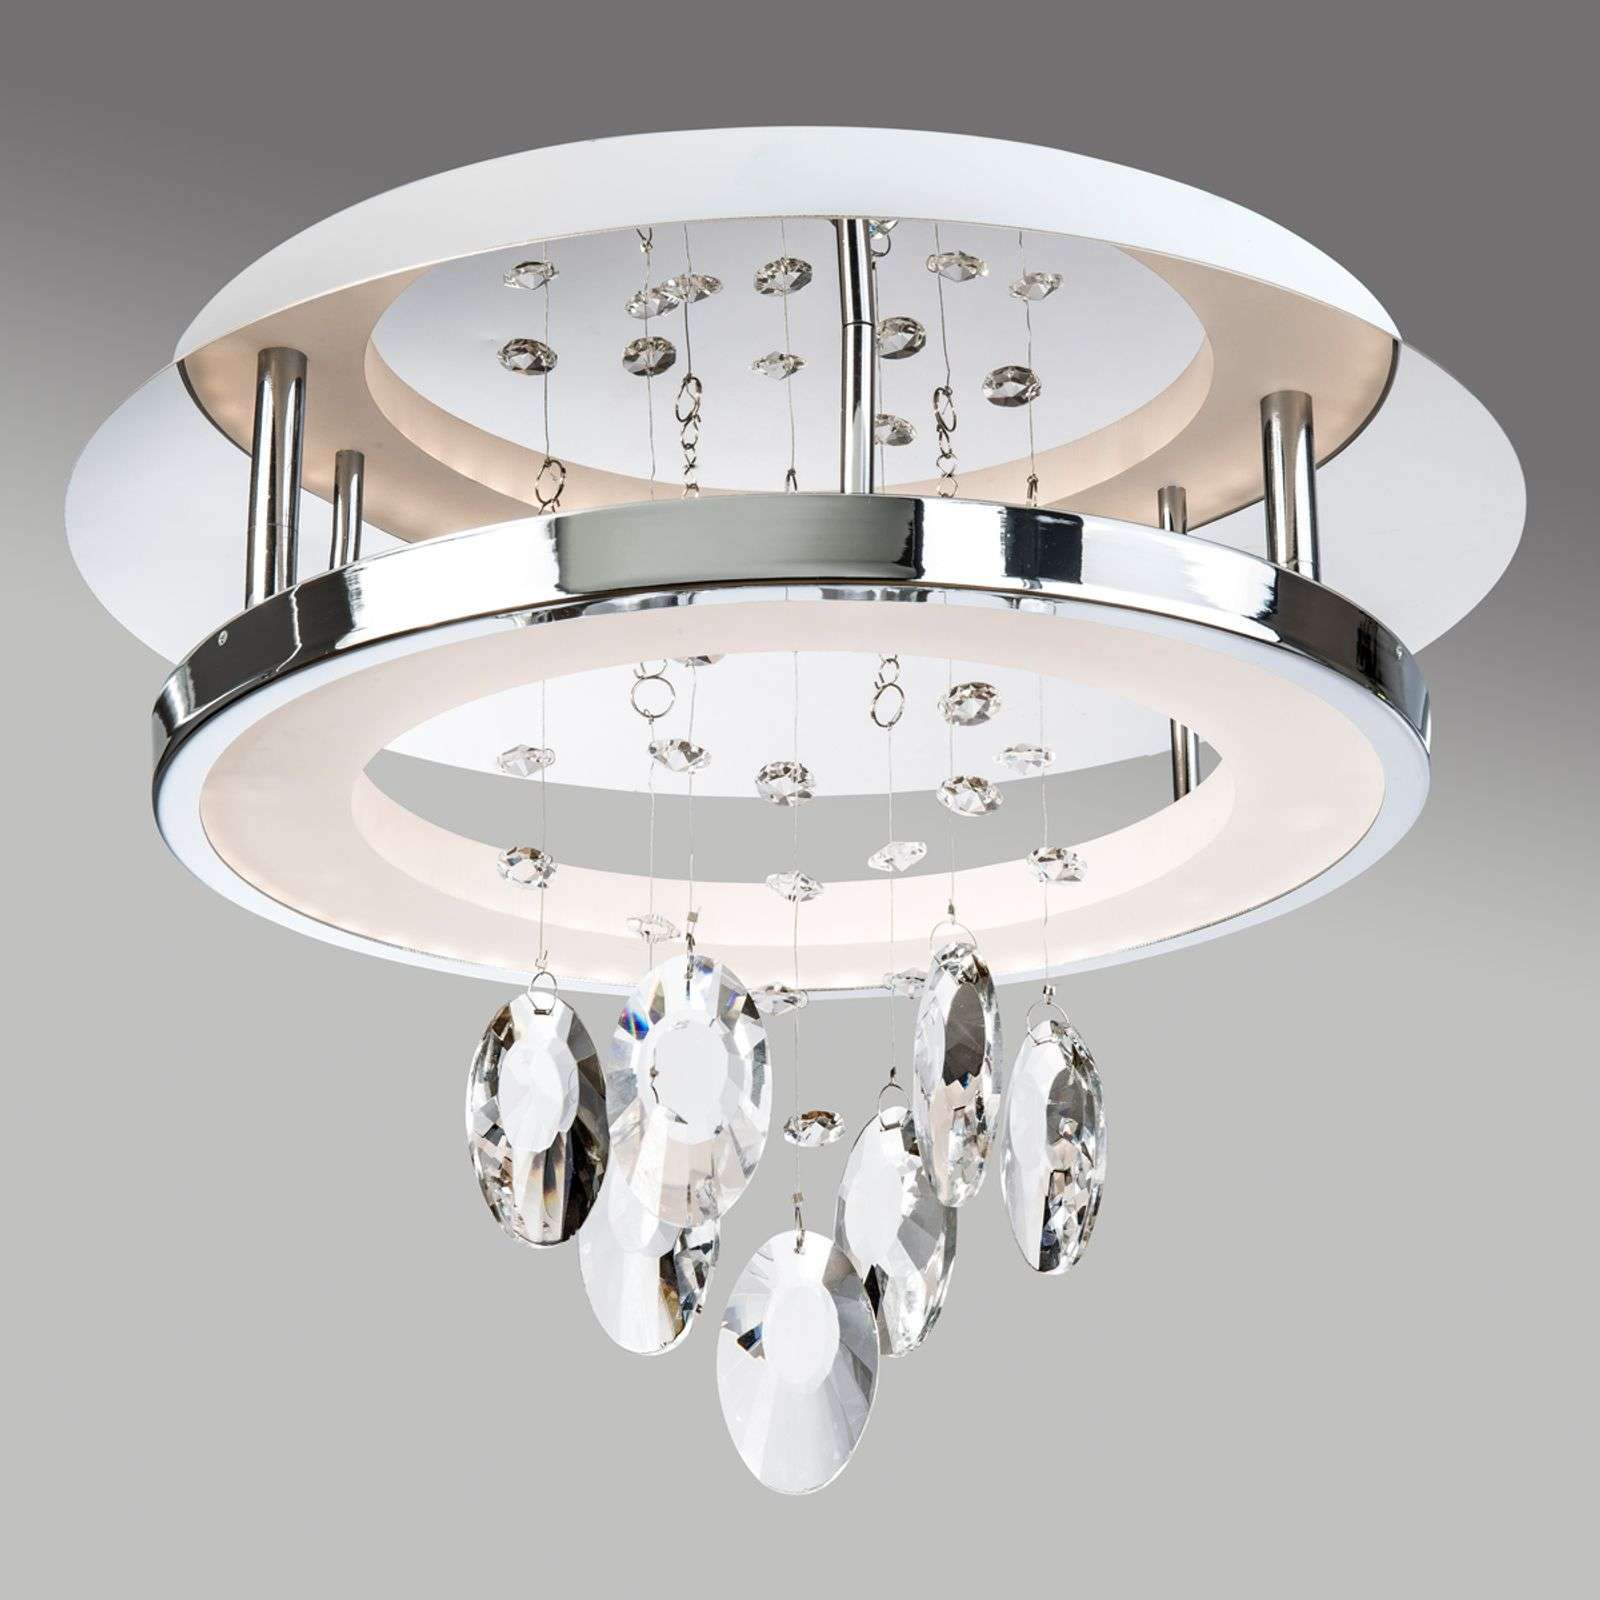 Plafonnier LED brillant Alva avec suspensions